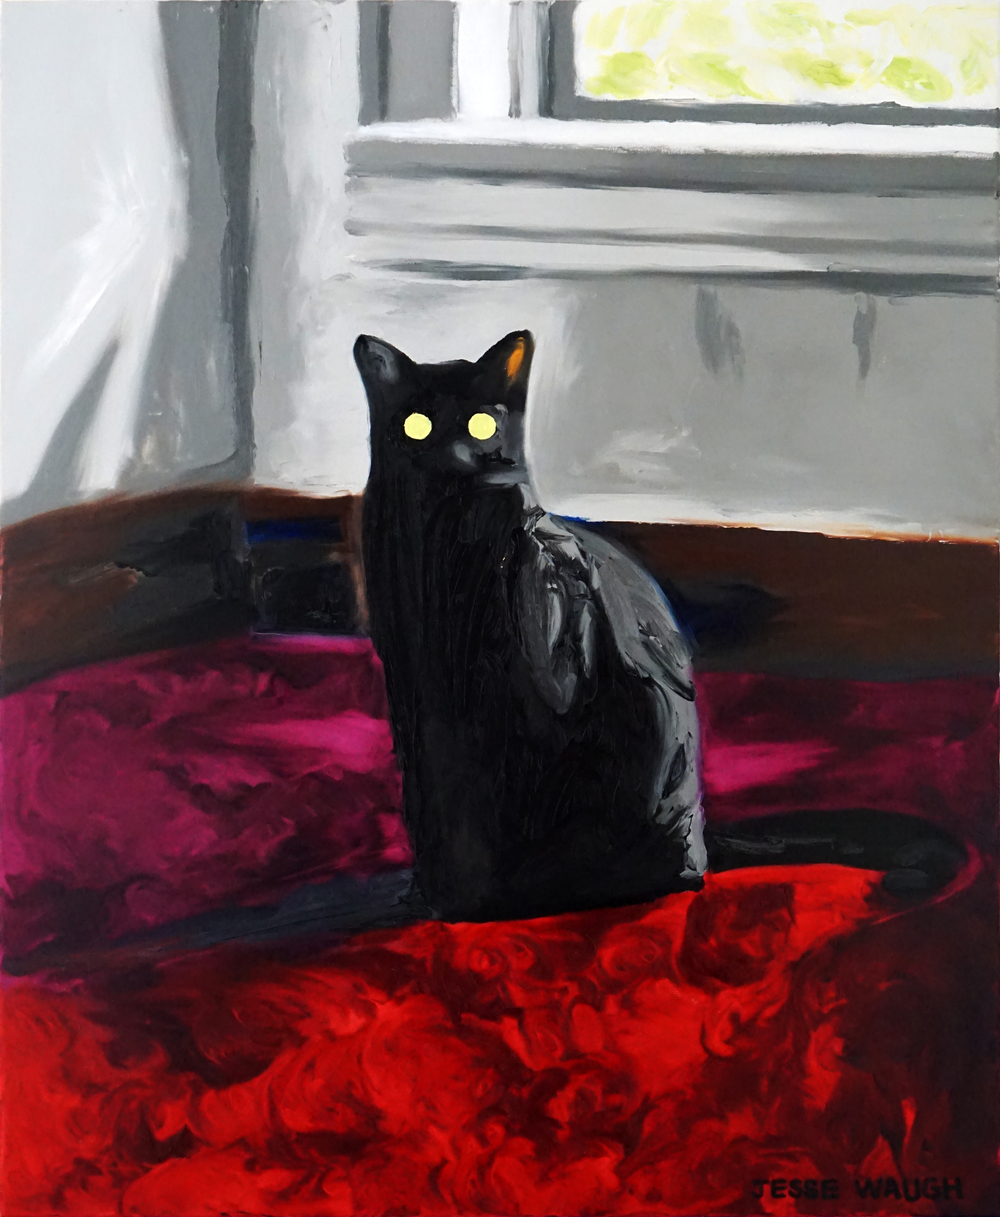 JESSE WAUGH   LE CHAT NOIR   2016 OIL ON CANVAS 60 X 73 CM